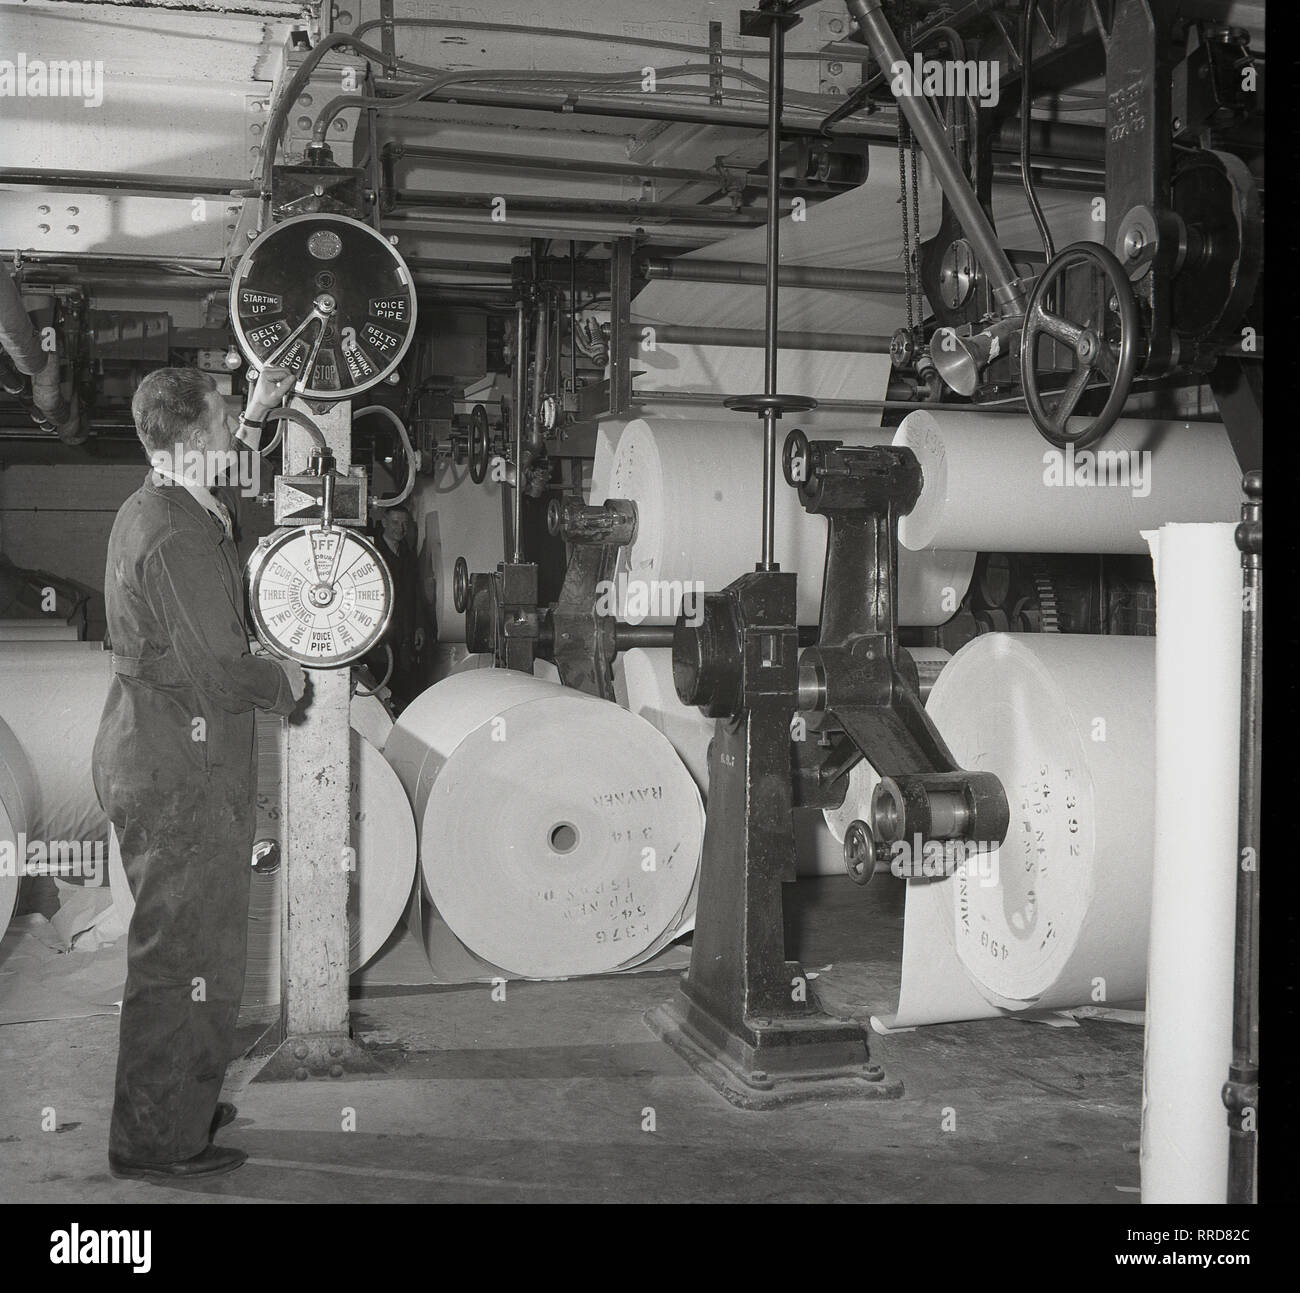 1950s, male worker in overalls checking the dials and operating controls at a print works of the Brittains Paper Mill, England, UK, showing the machinery where the finished rolls of paper are stored. - Stock Image